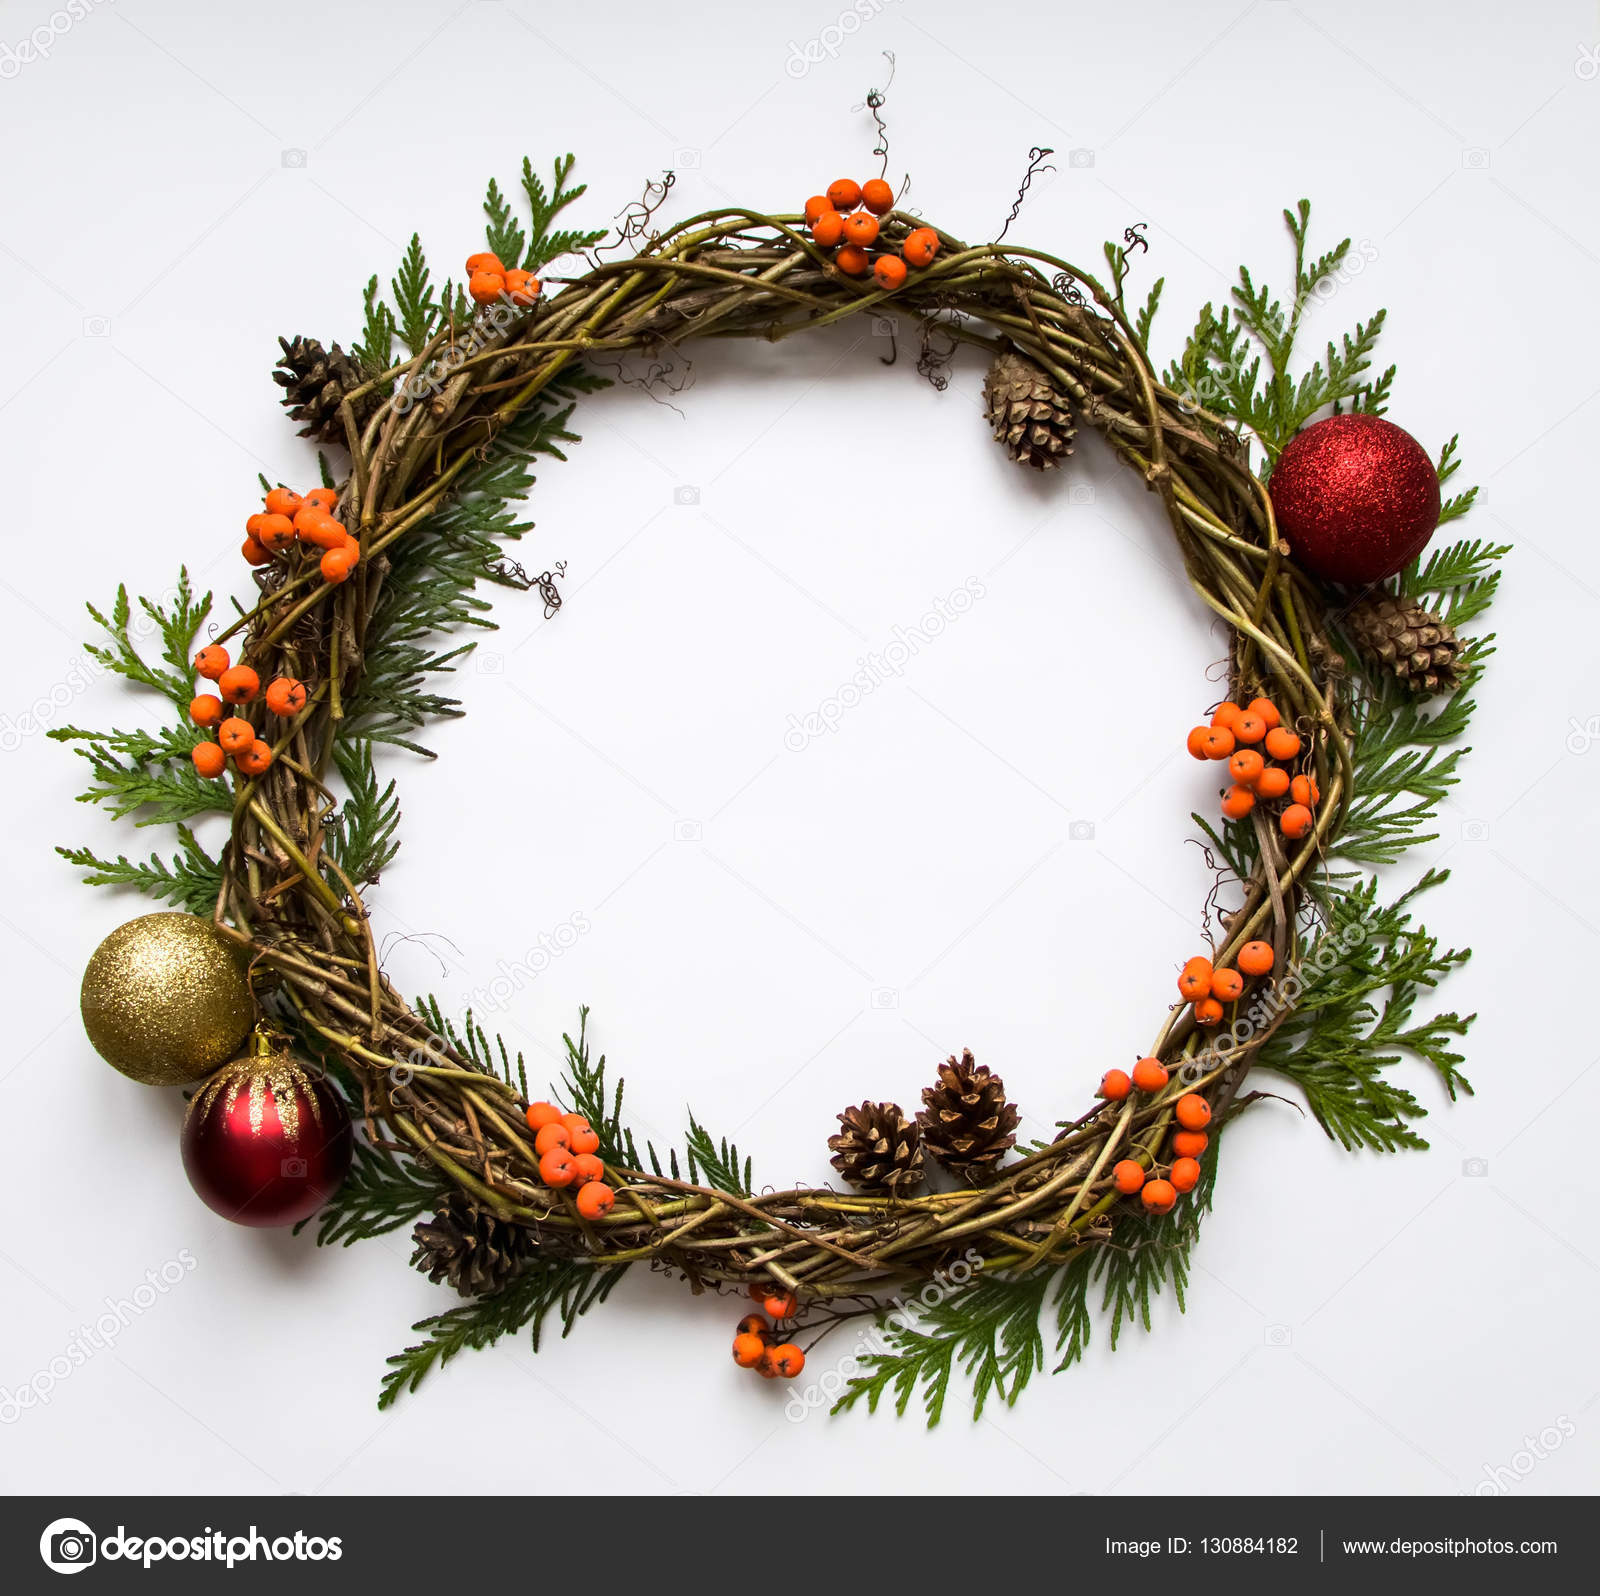 Christmas Vines.Christmas Wreath Of Vines With Decorative Ornaments Thuja